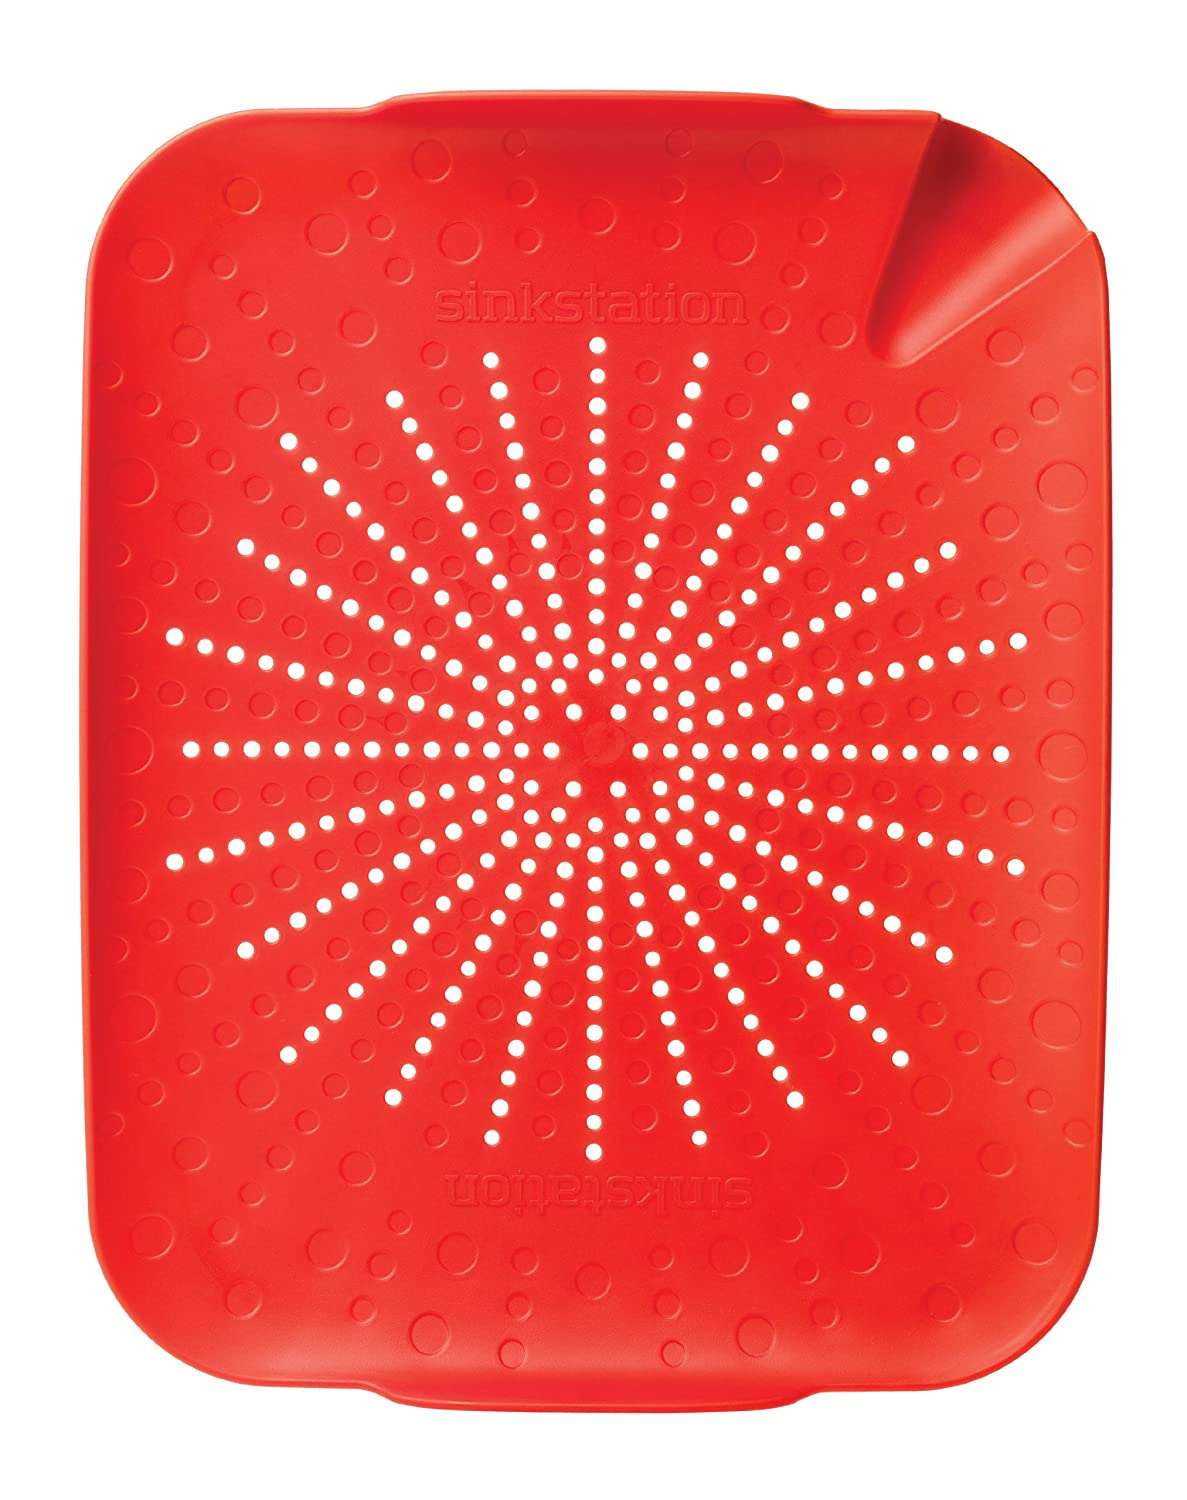 Sinkstation Flat Colander, Red 6002RD